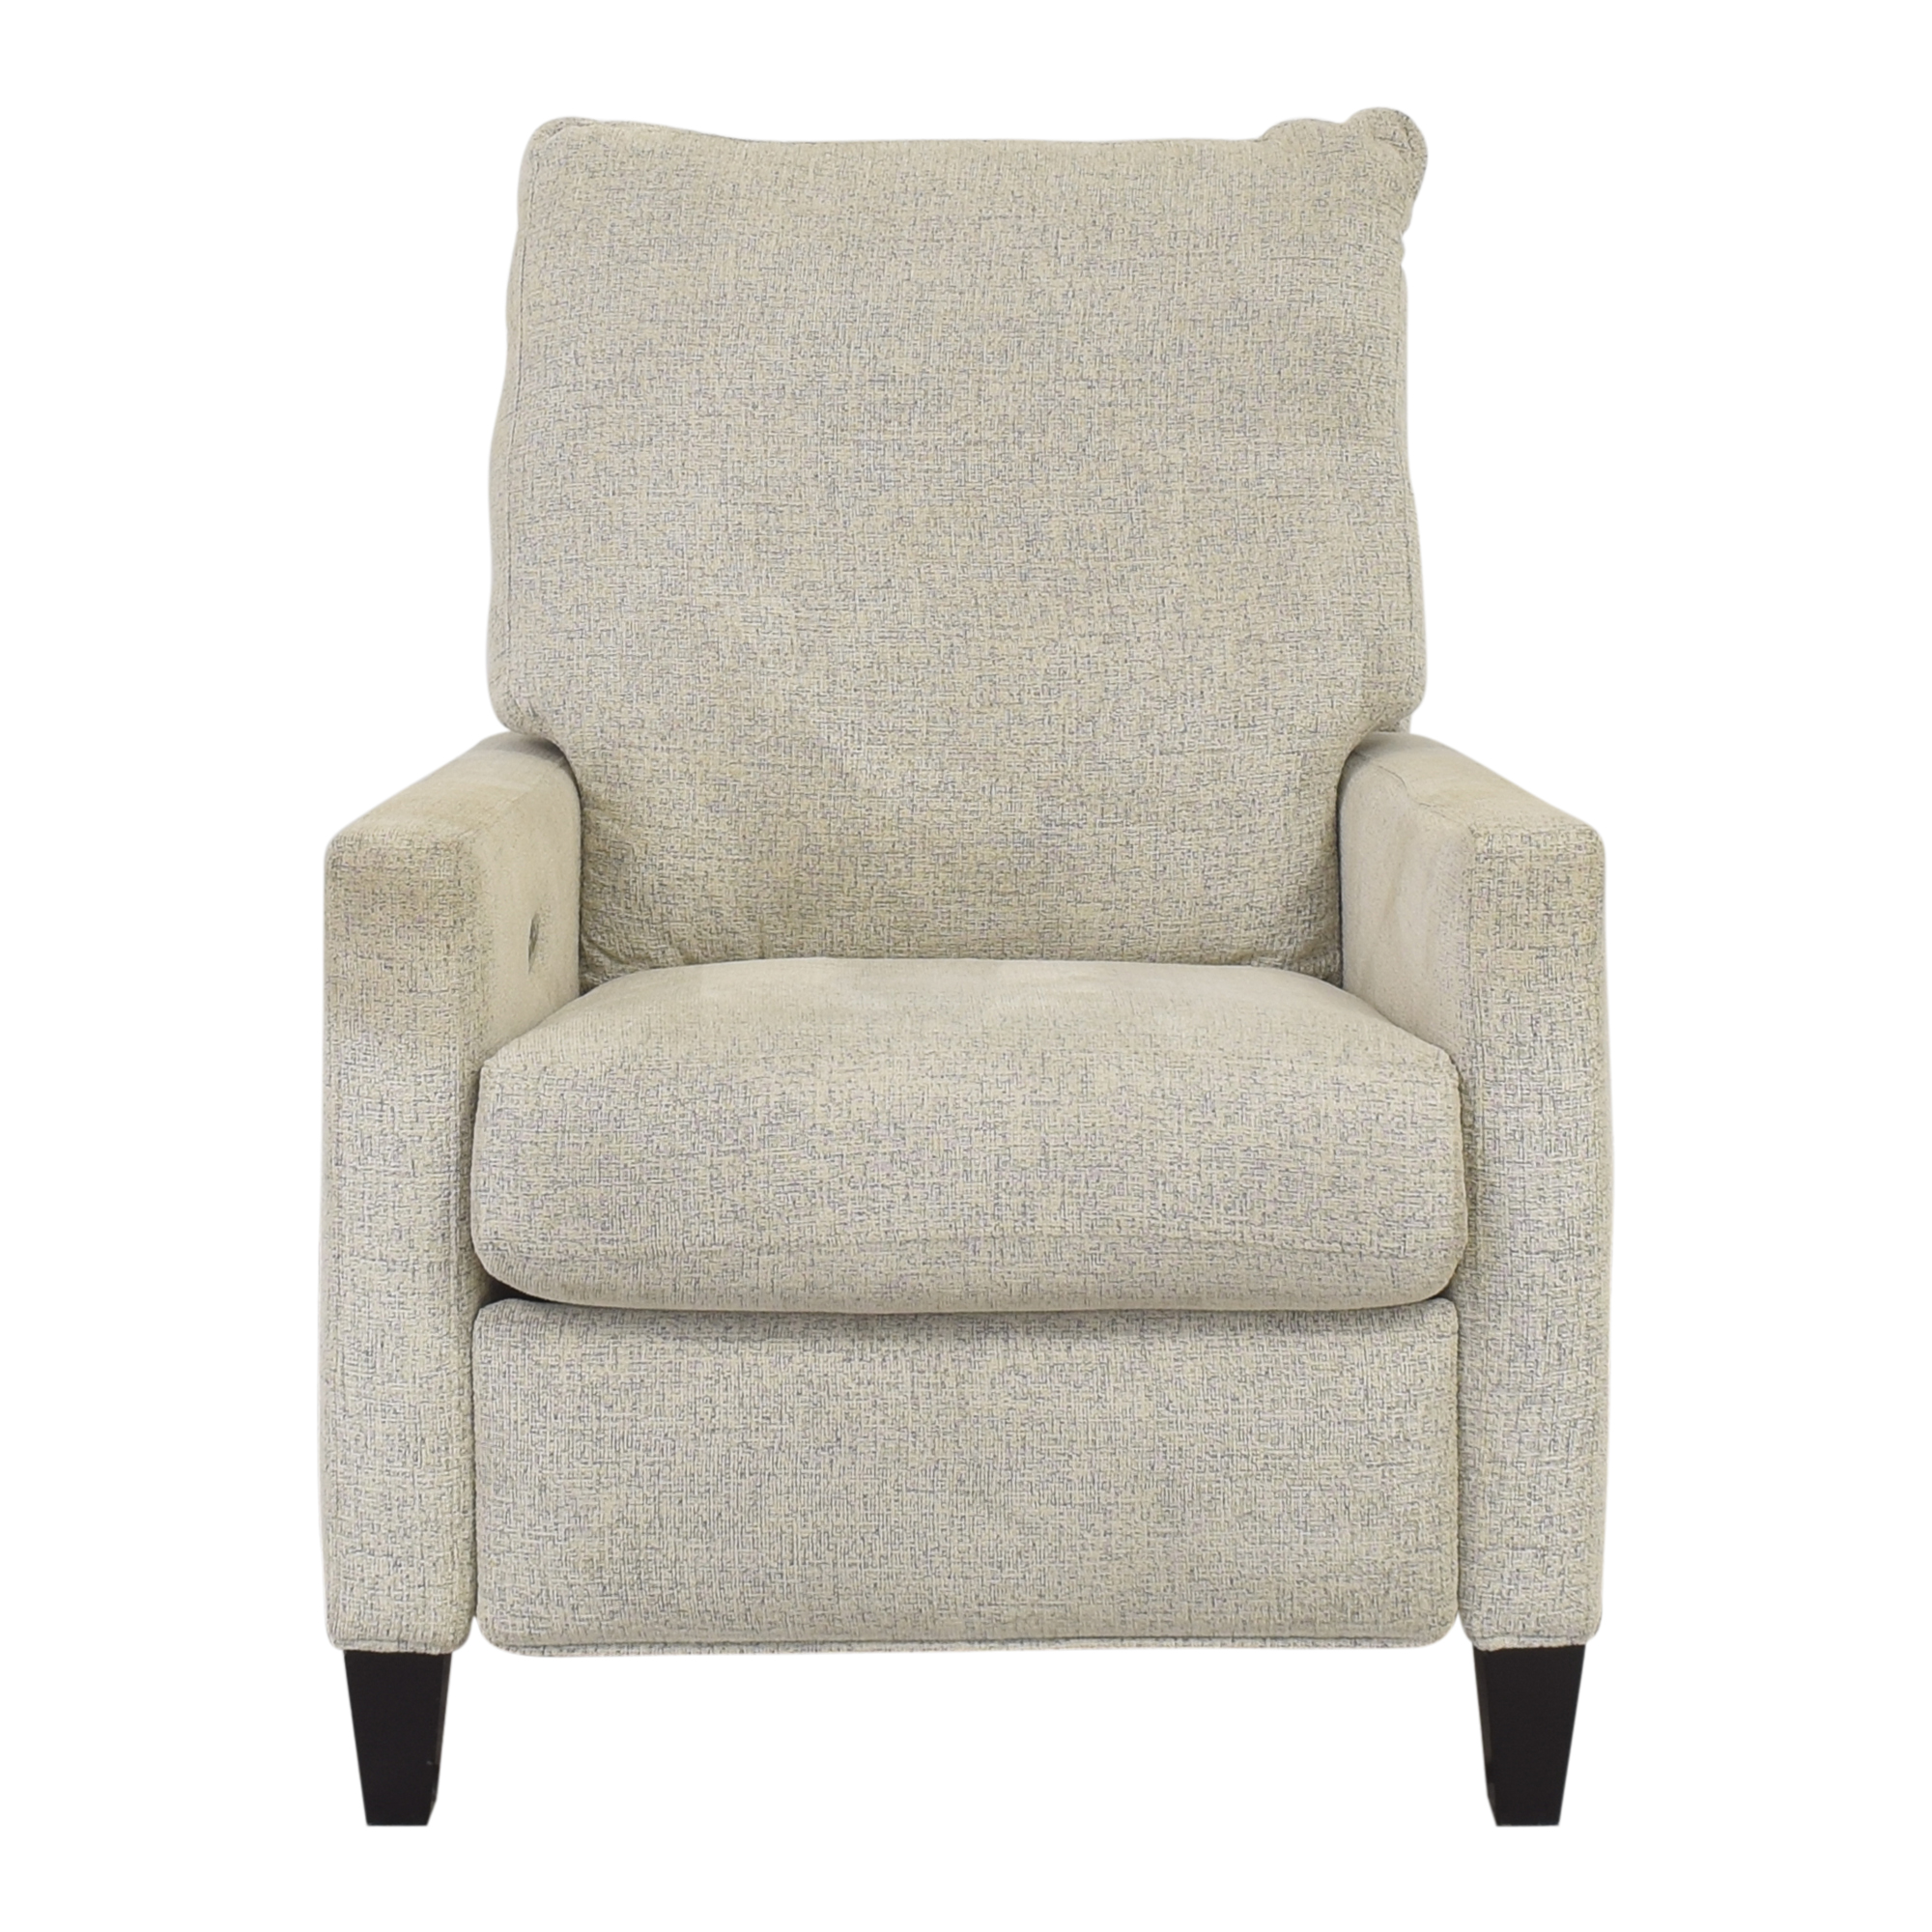 Bloomingdale's Bloomingdale's Sophie Power-Recliner Chair ct